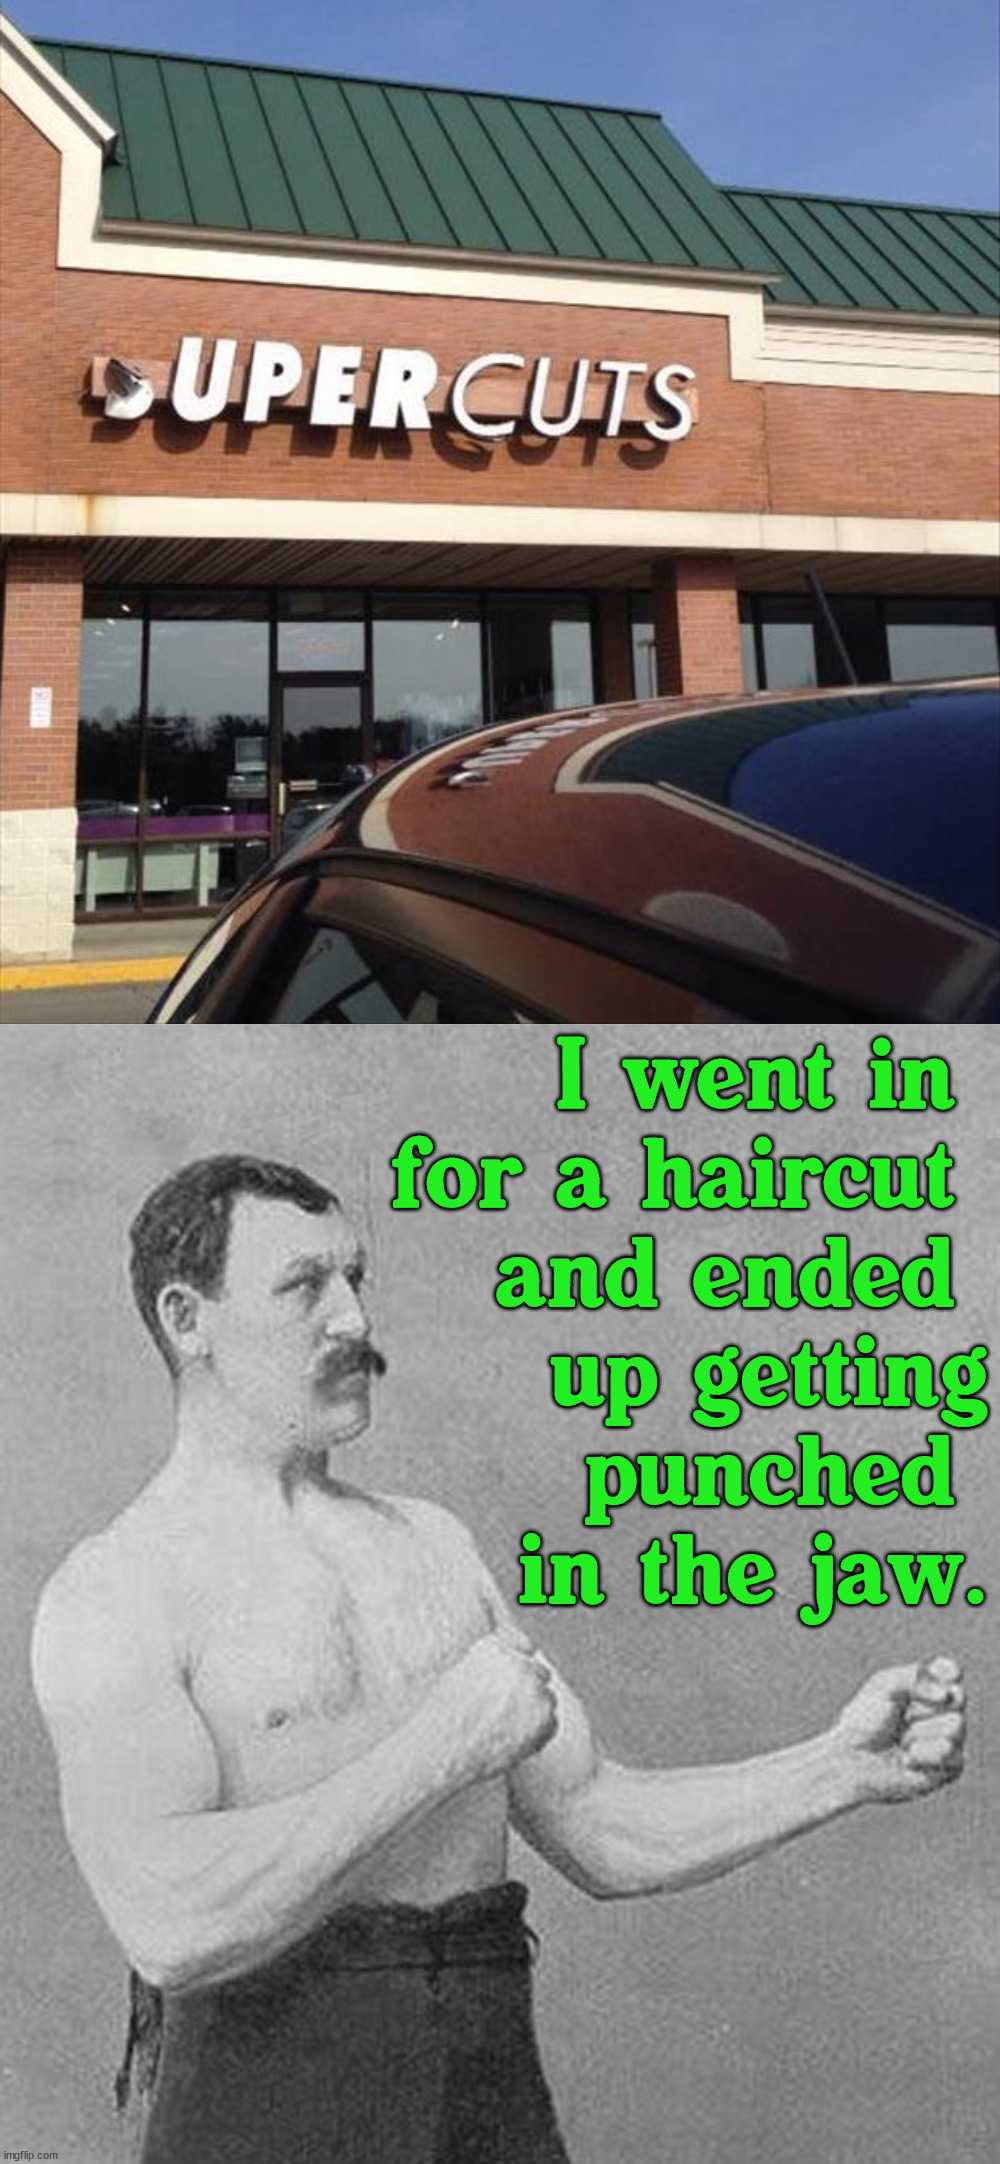 Almost broke my jaw. |  I went in  for a haircut  and ended  up getting punched  in the jaw. | image tagged in old school boxer,haircut,funny signs,broken | made w/ Imgflip meme maker